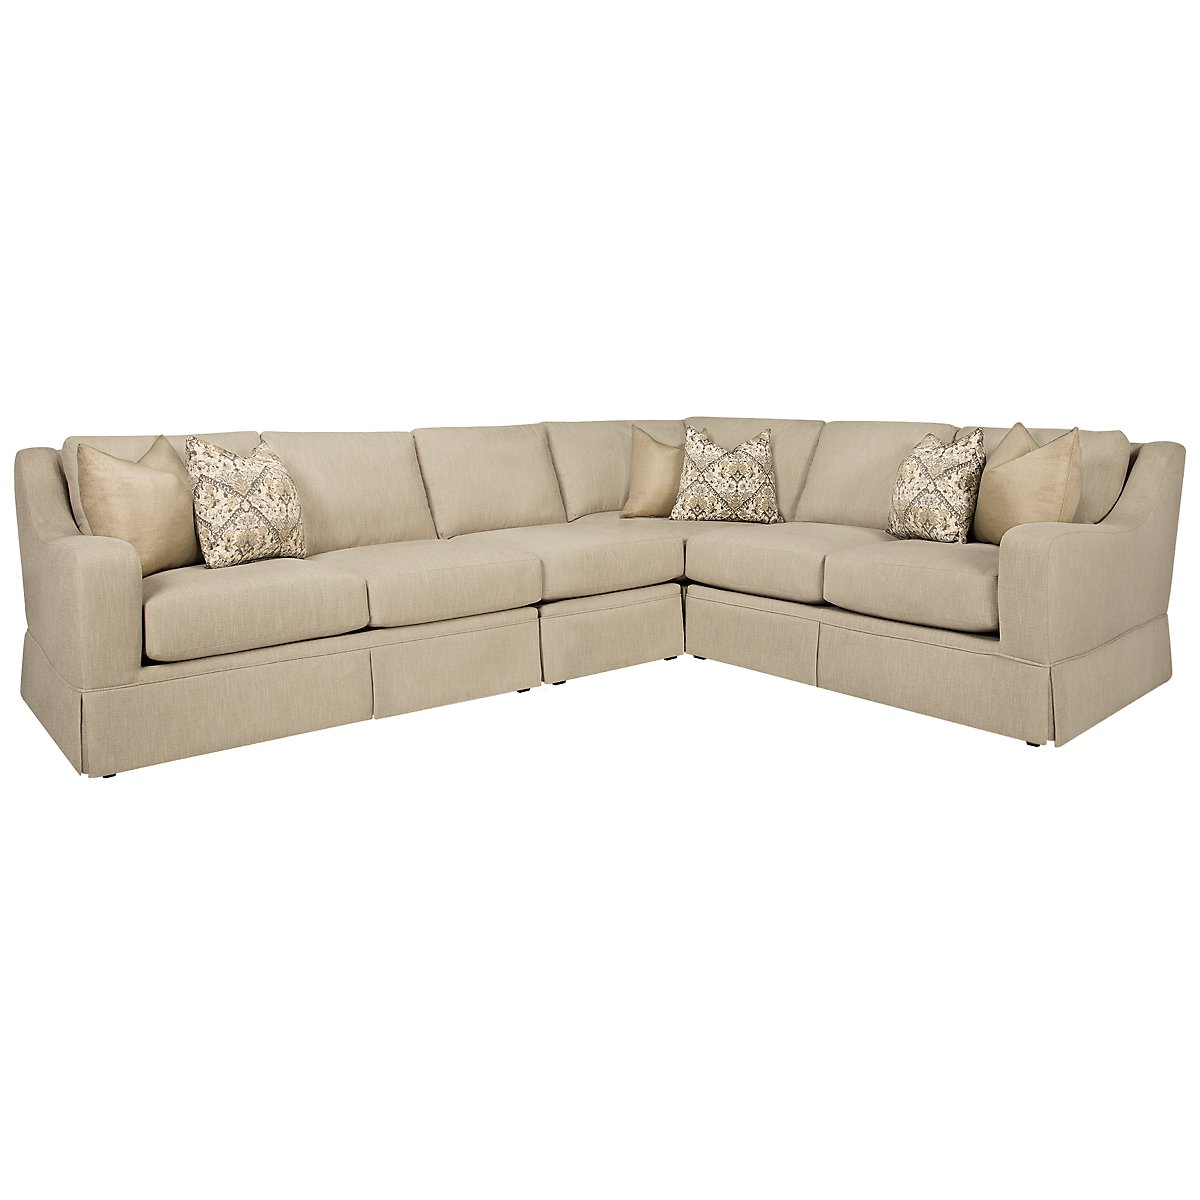 Hallie Beige Fabric Large Two-Arm Sectional